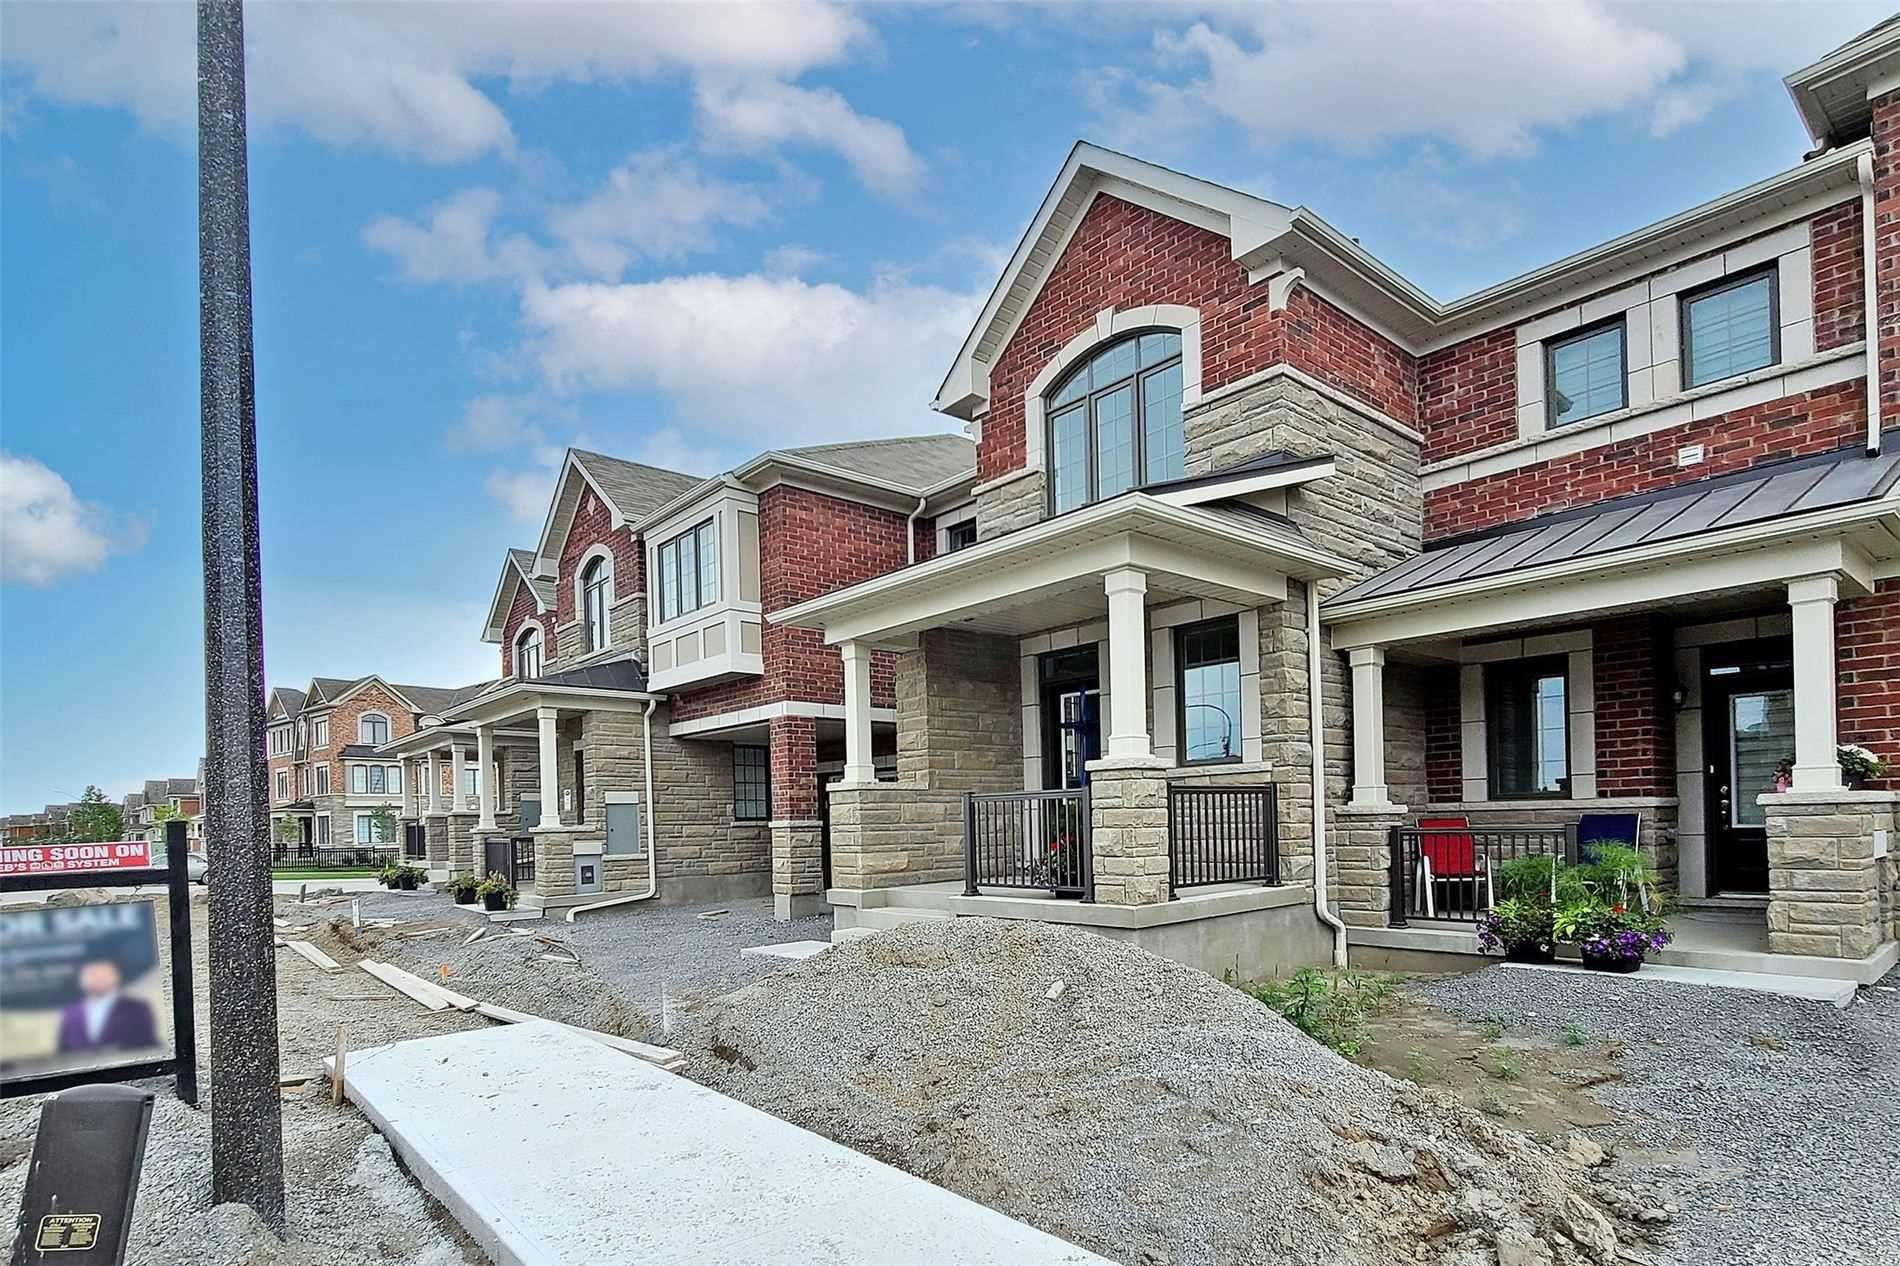 Photo of 27 Broden Cres, Whitby, ON M1X2C3 (MLS # E5325405)